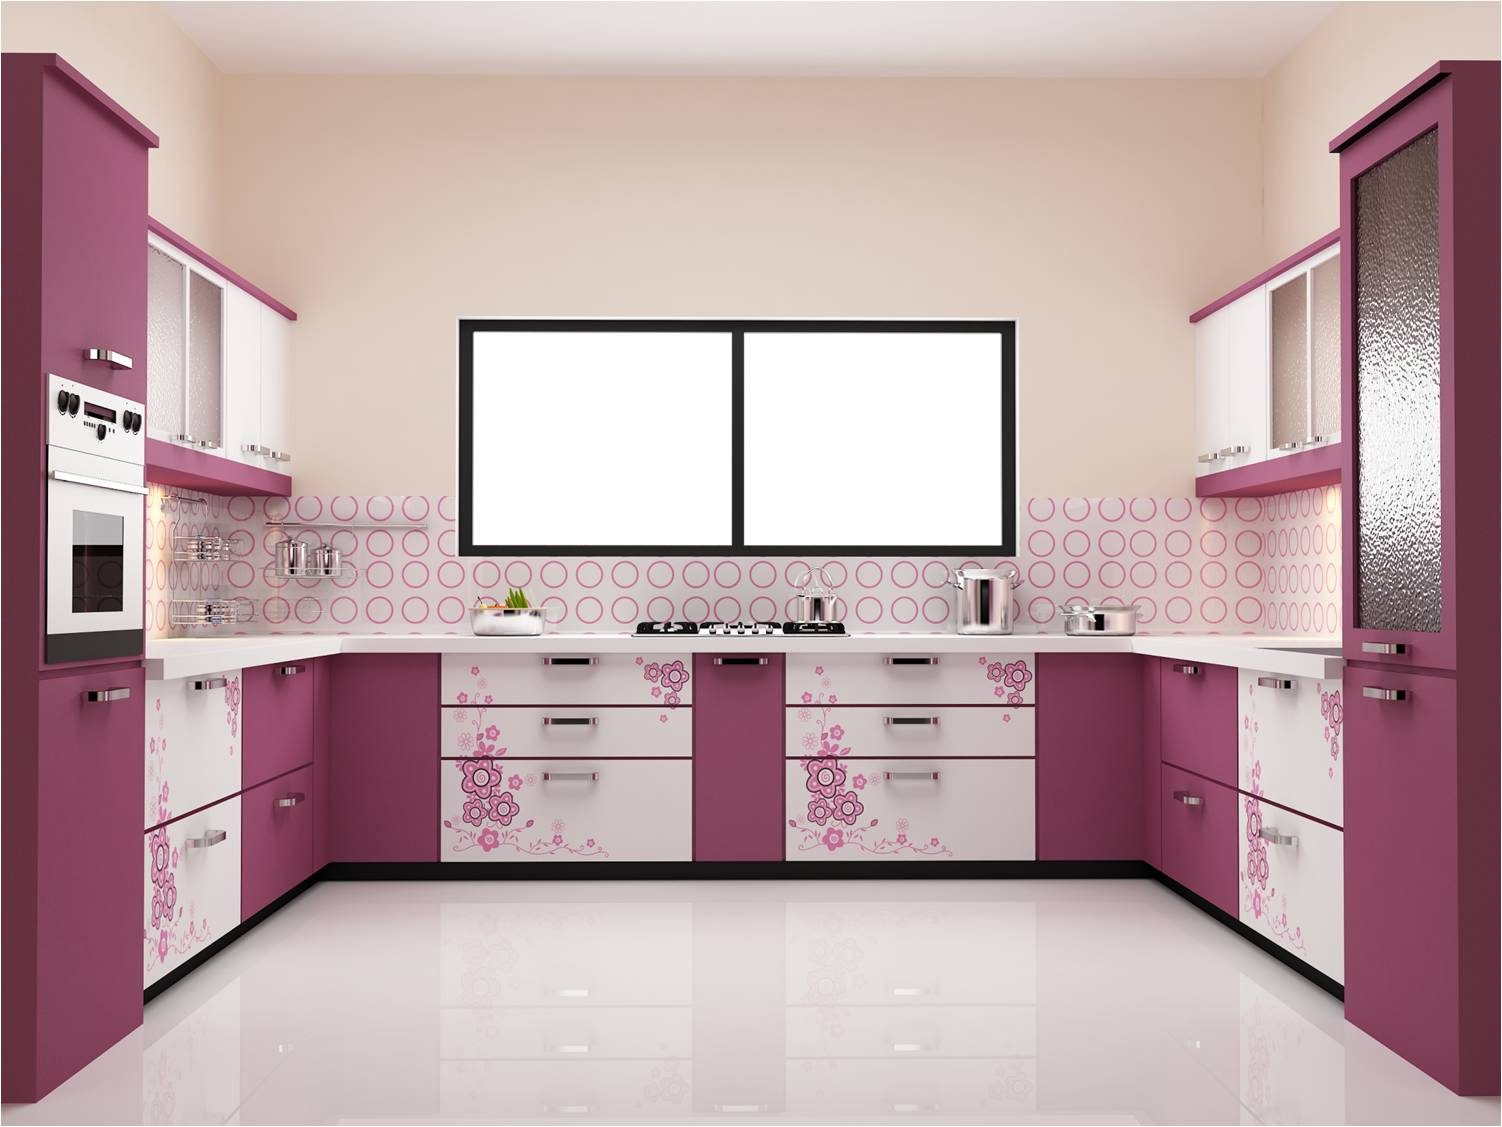 New 100 Modular Kitchen Designs Cabinets Colors Accessories 2019